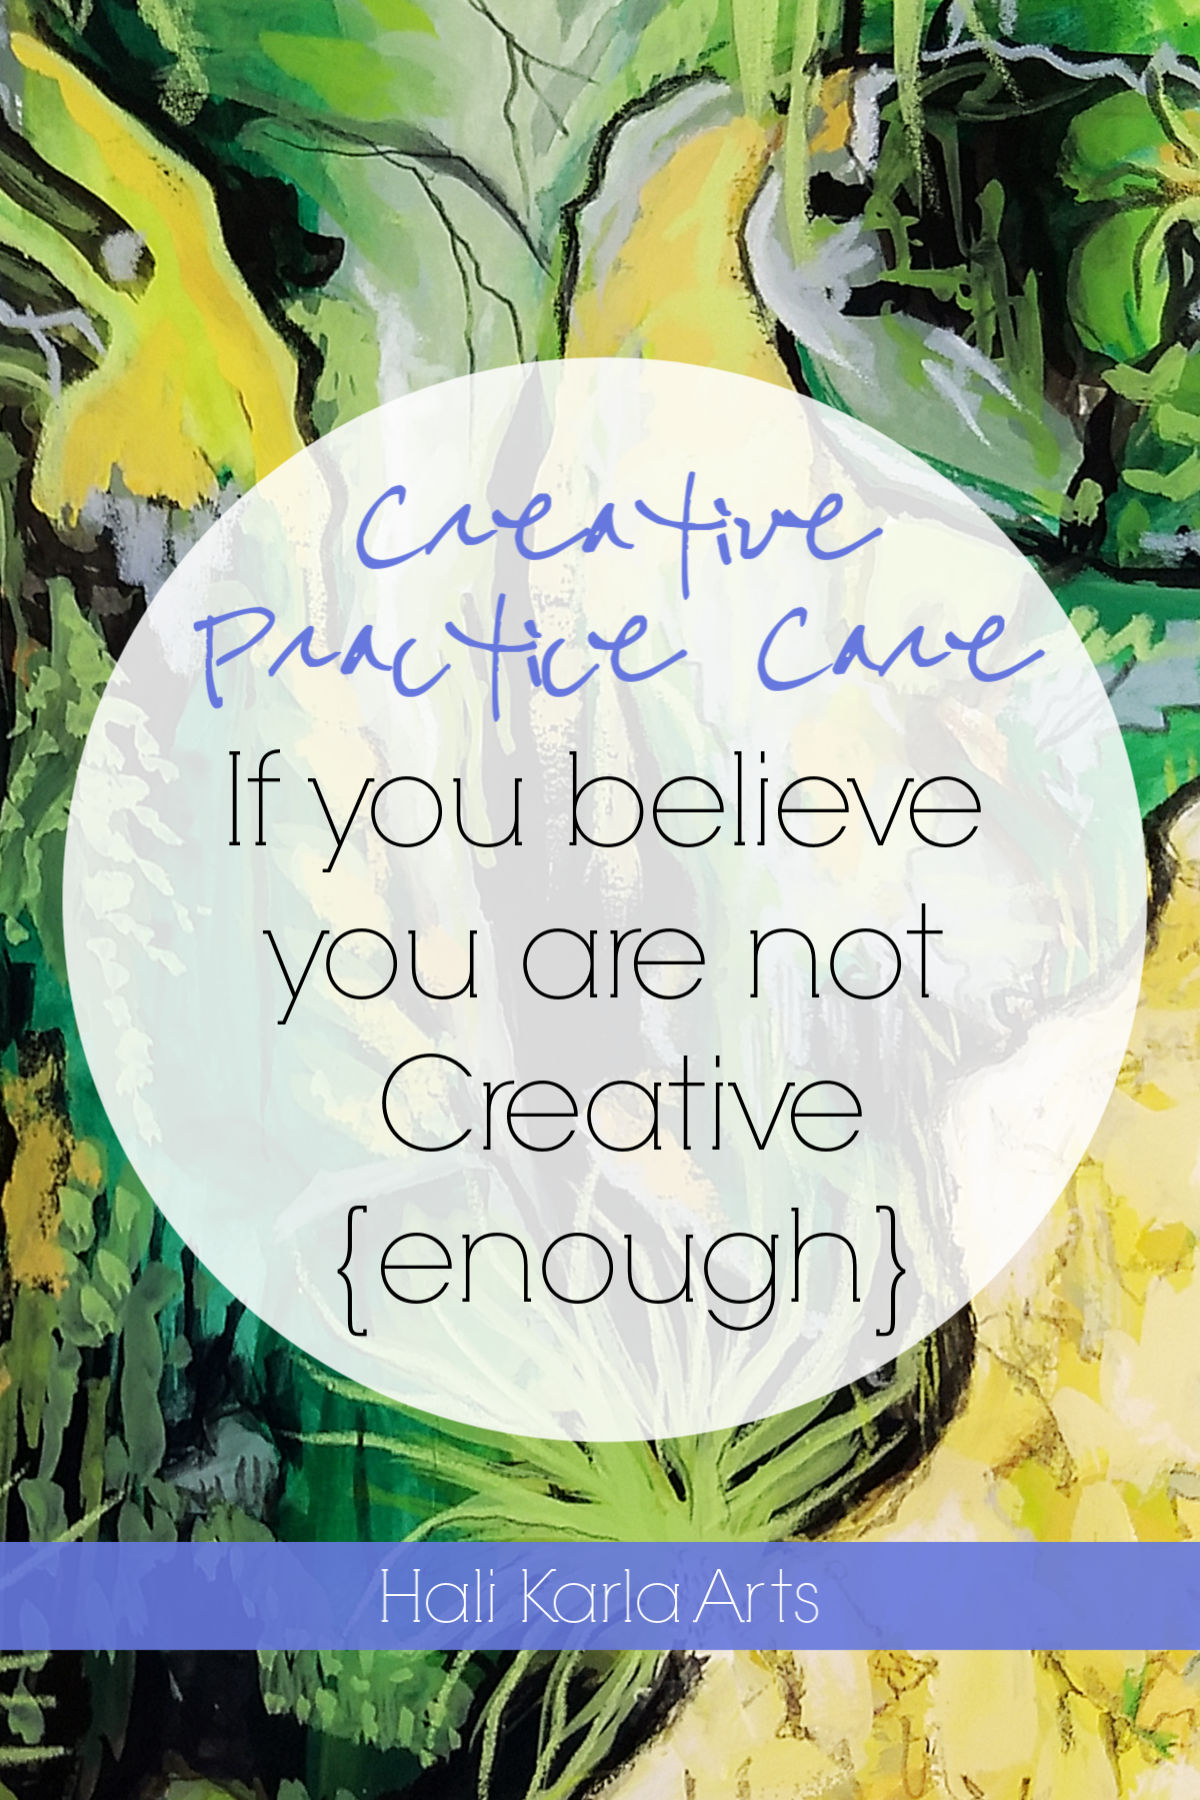 if you believe you are not creative {enough, at all, anymore} | Creative Practice Care note from Hali karla Arts